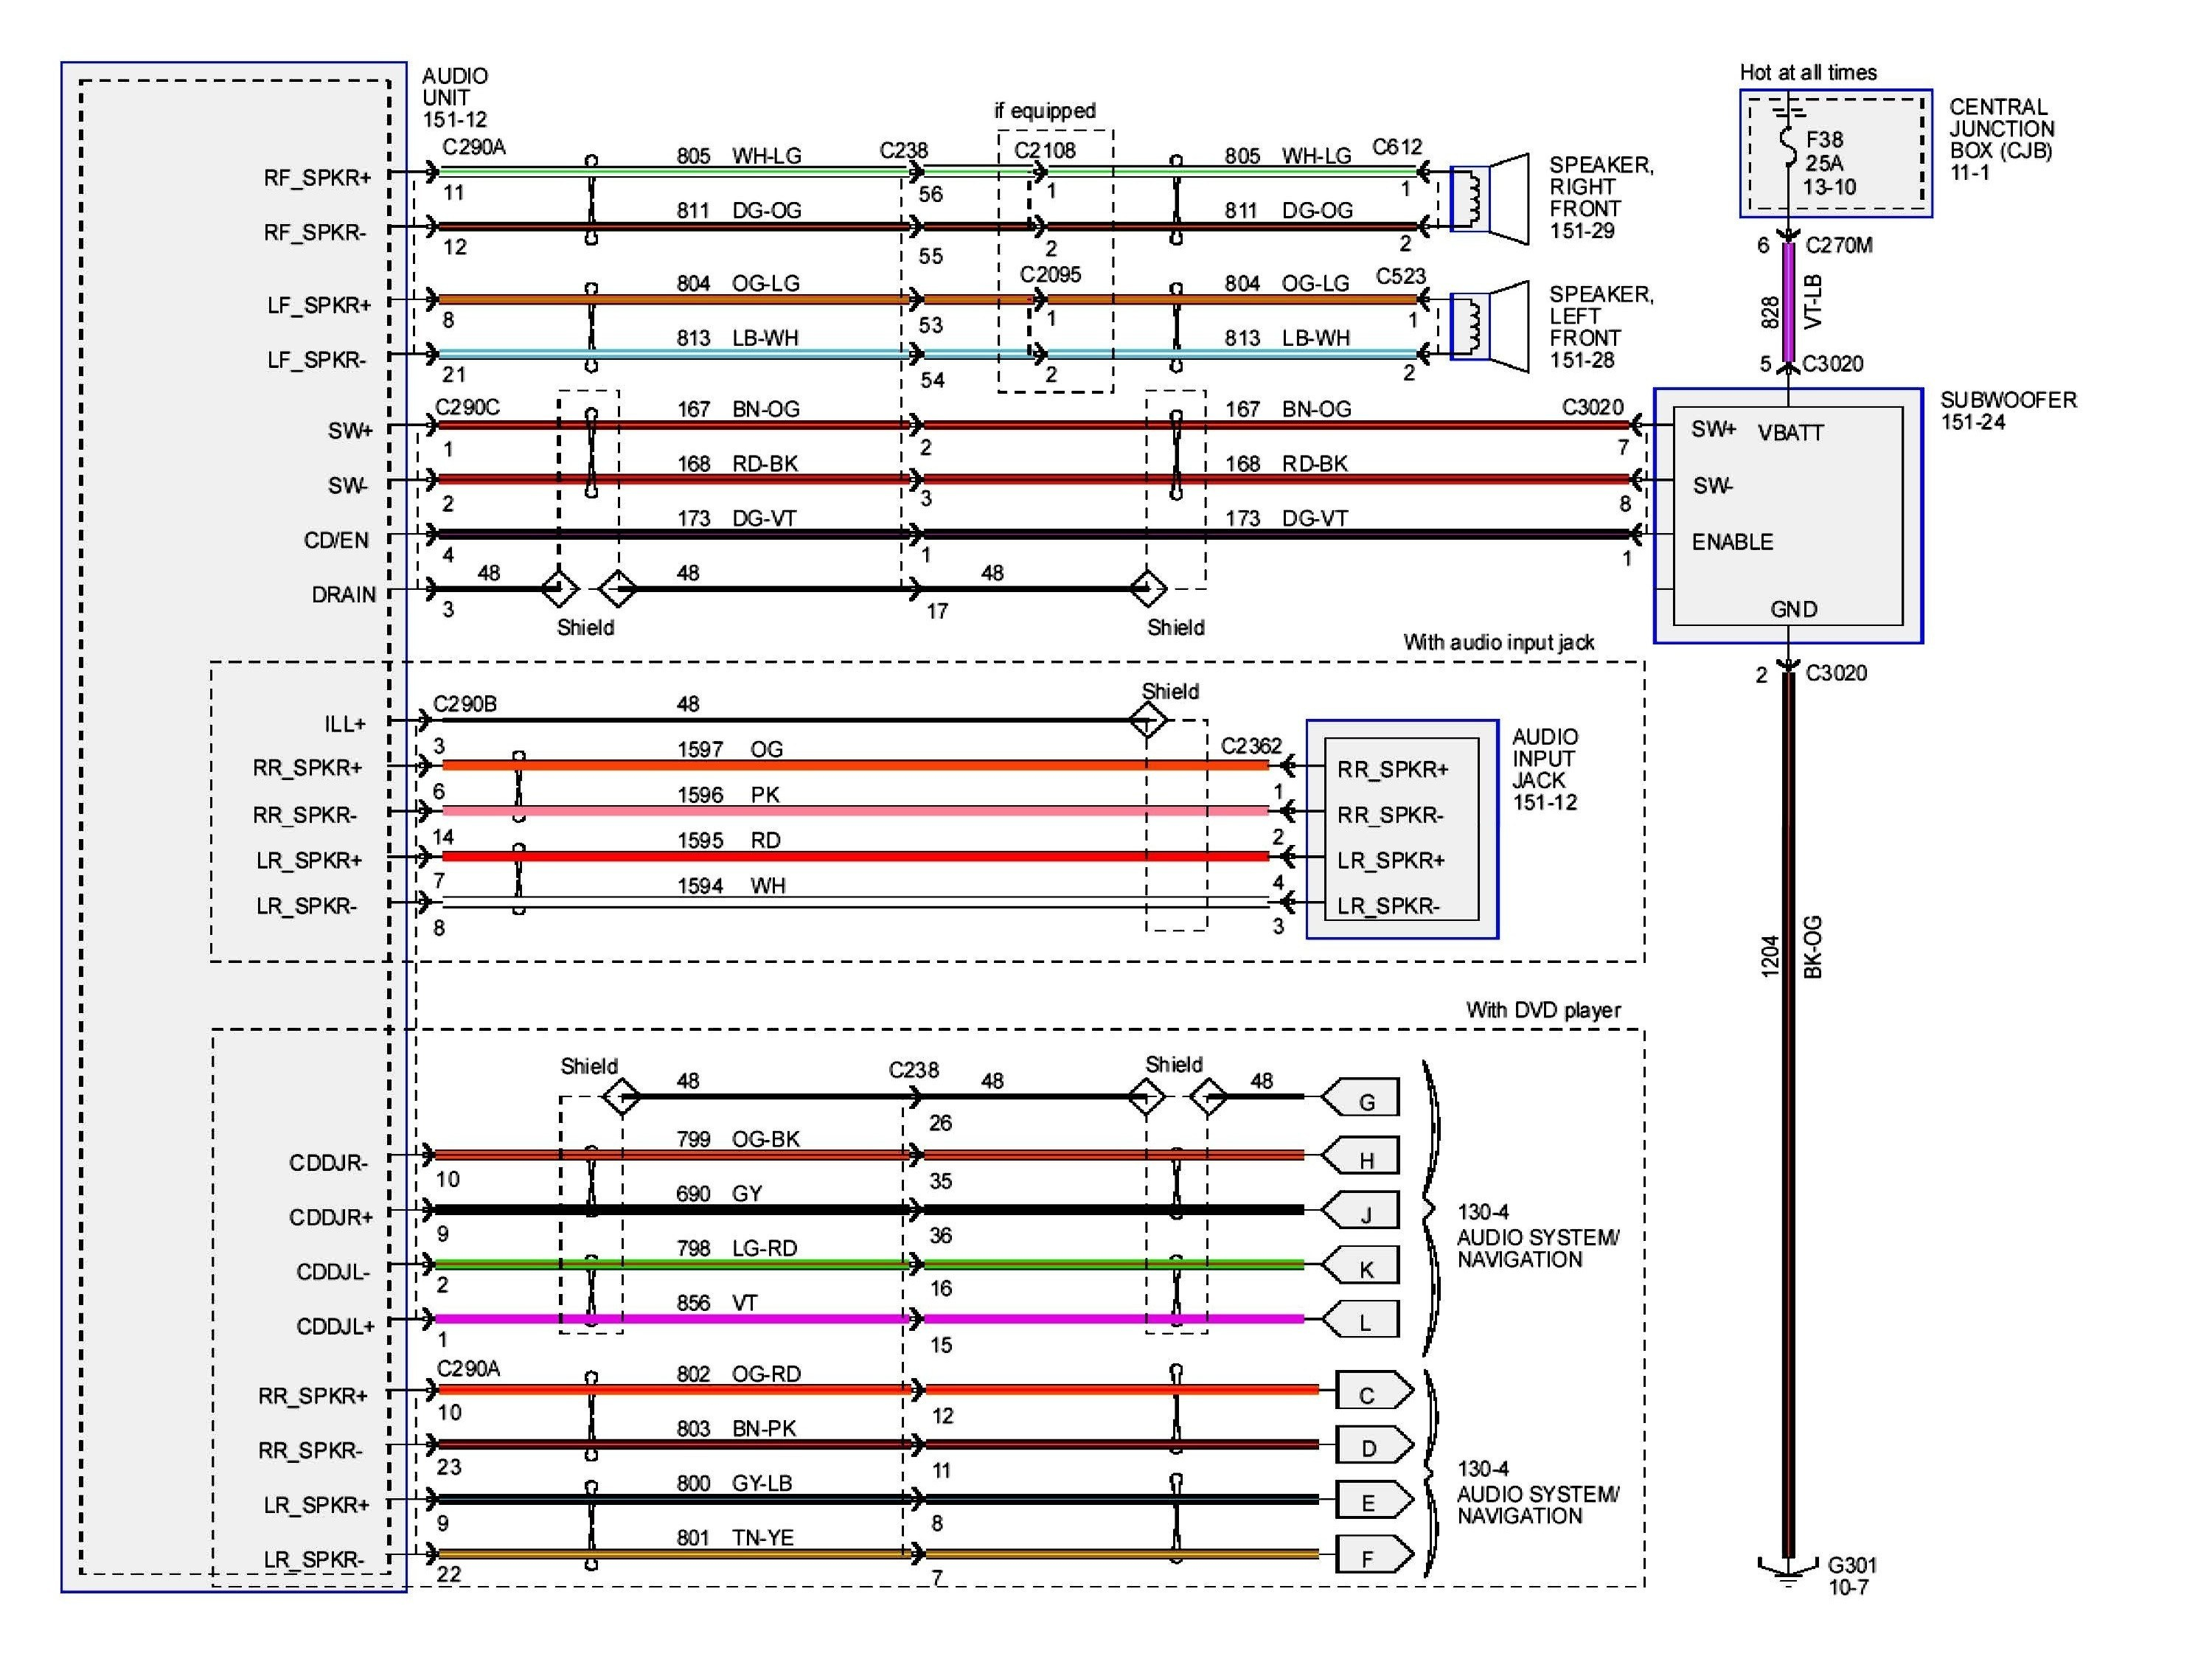 2011 F750 Fuse Box - Wiring Diagram Schematics F Wiring Diagram on